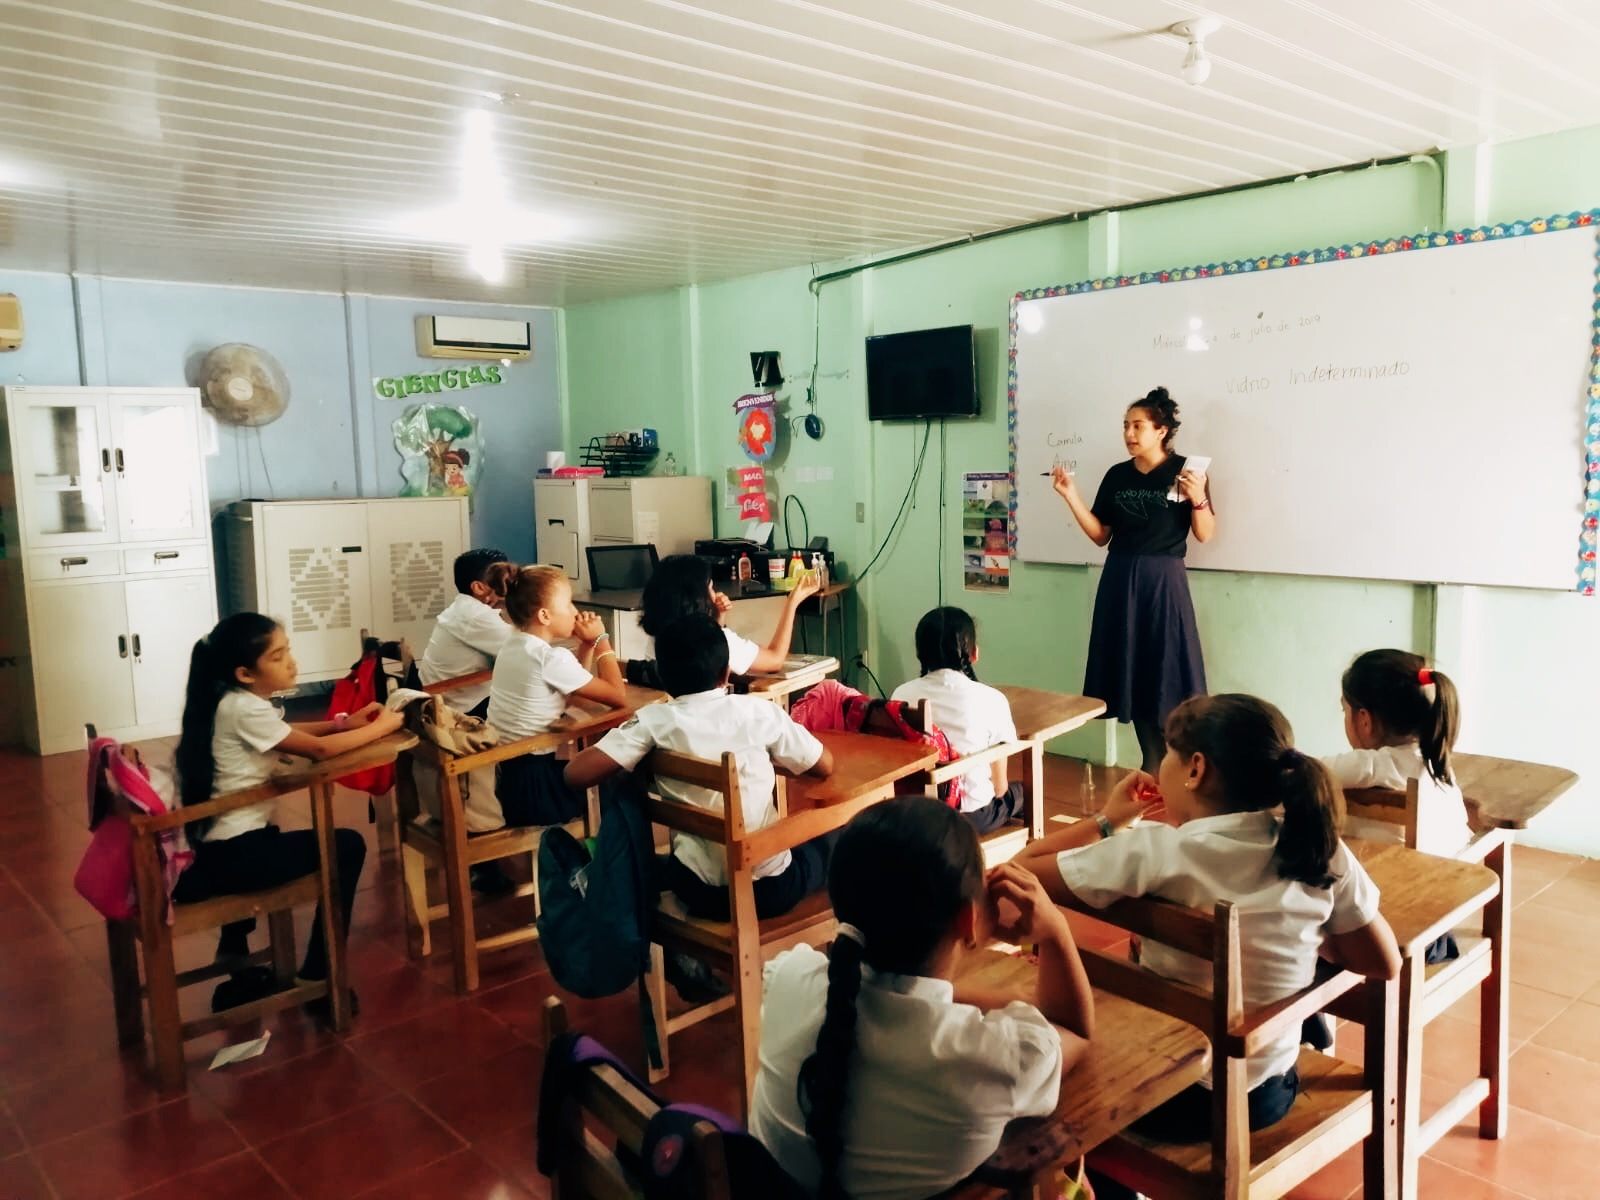 Camila Rojas in a classroom in Costa Rica